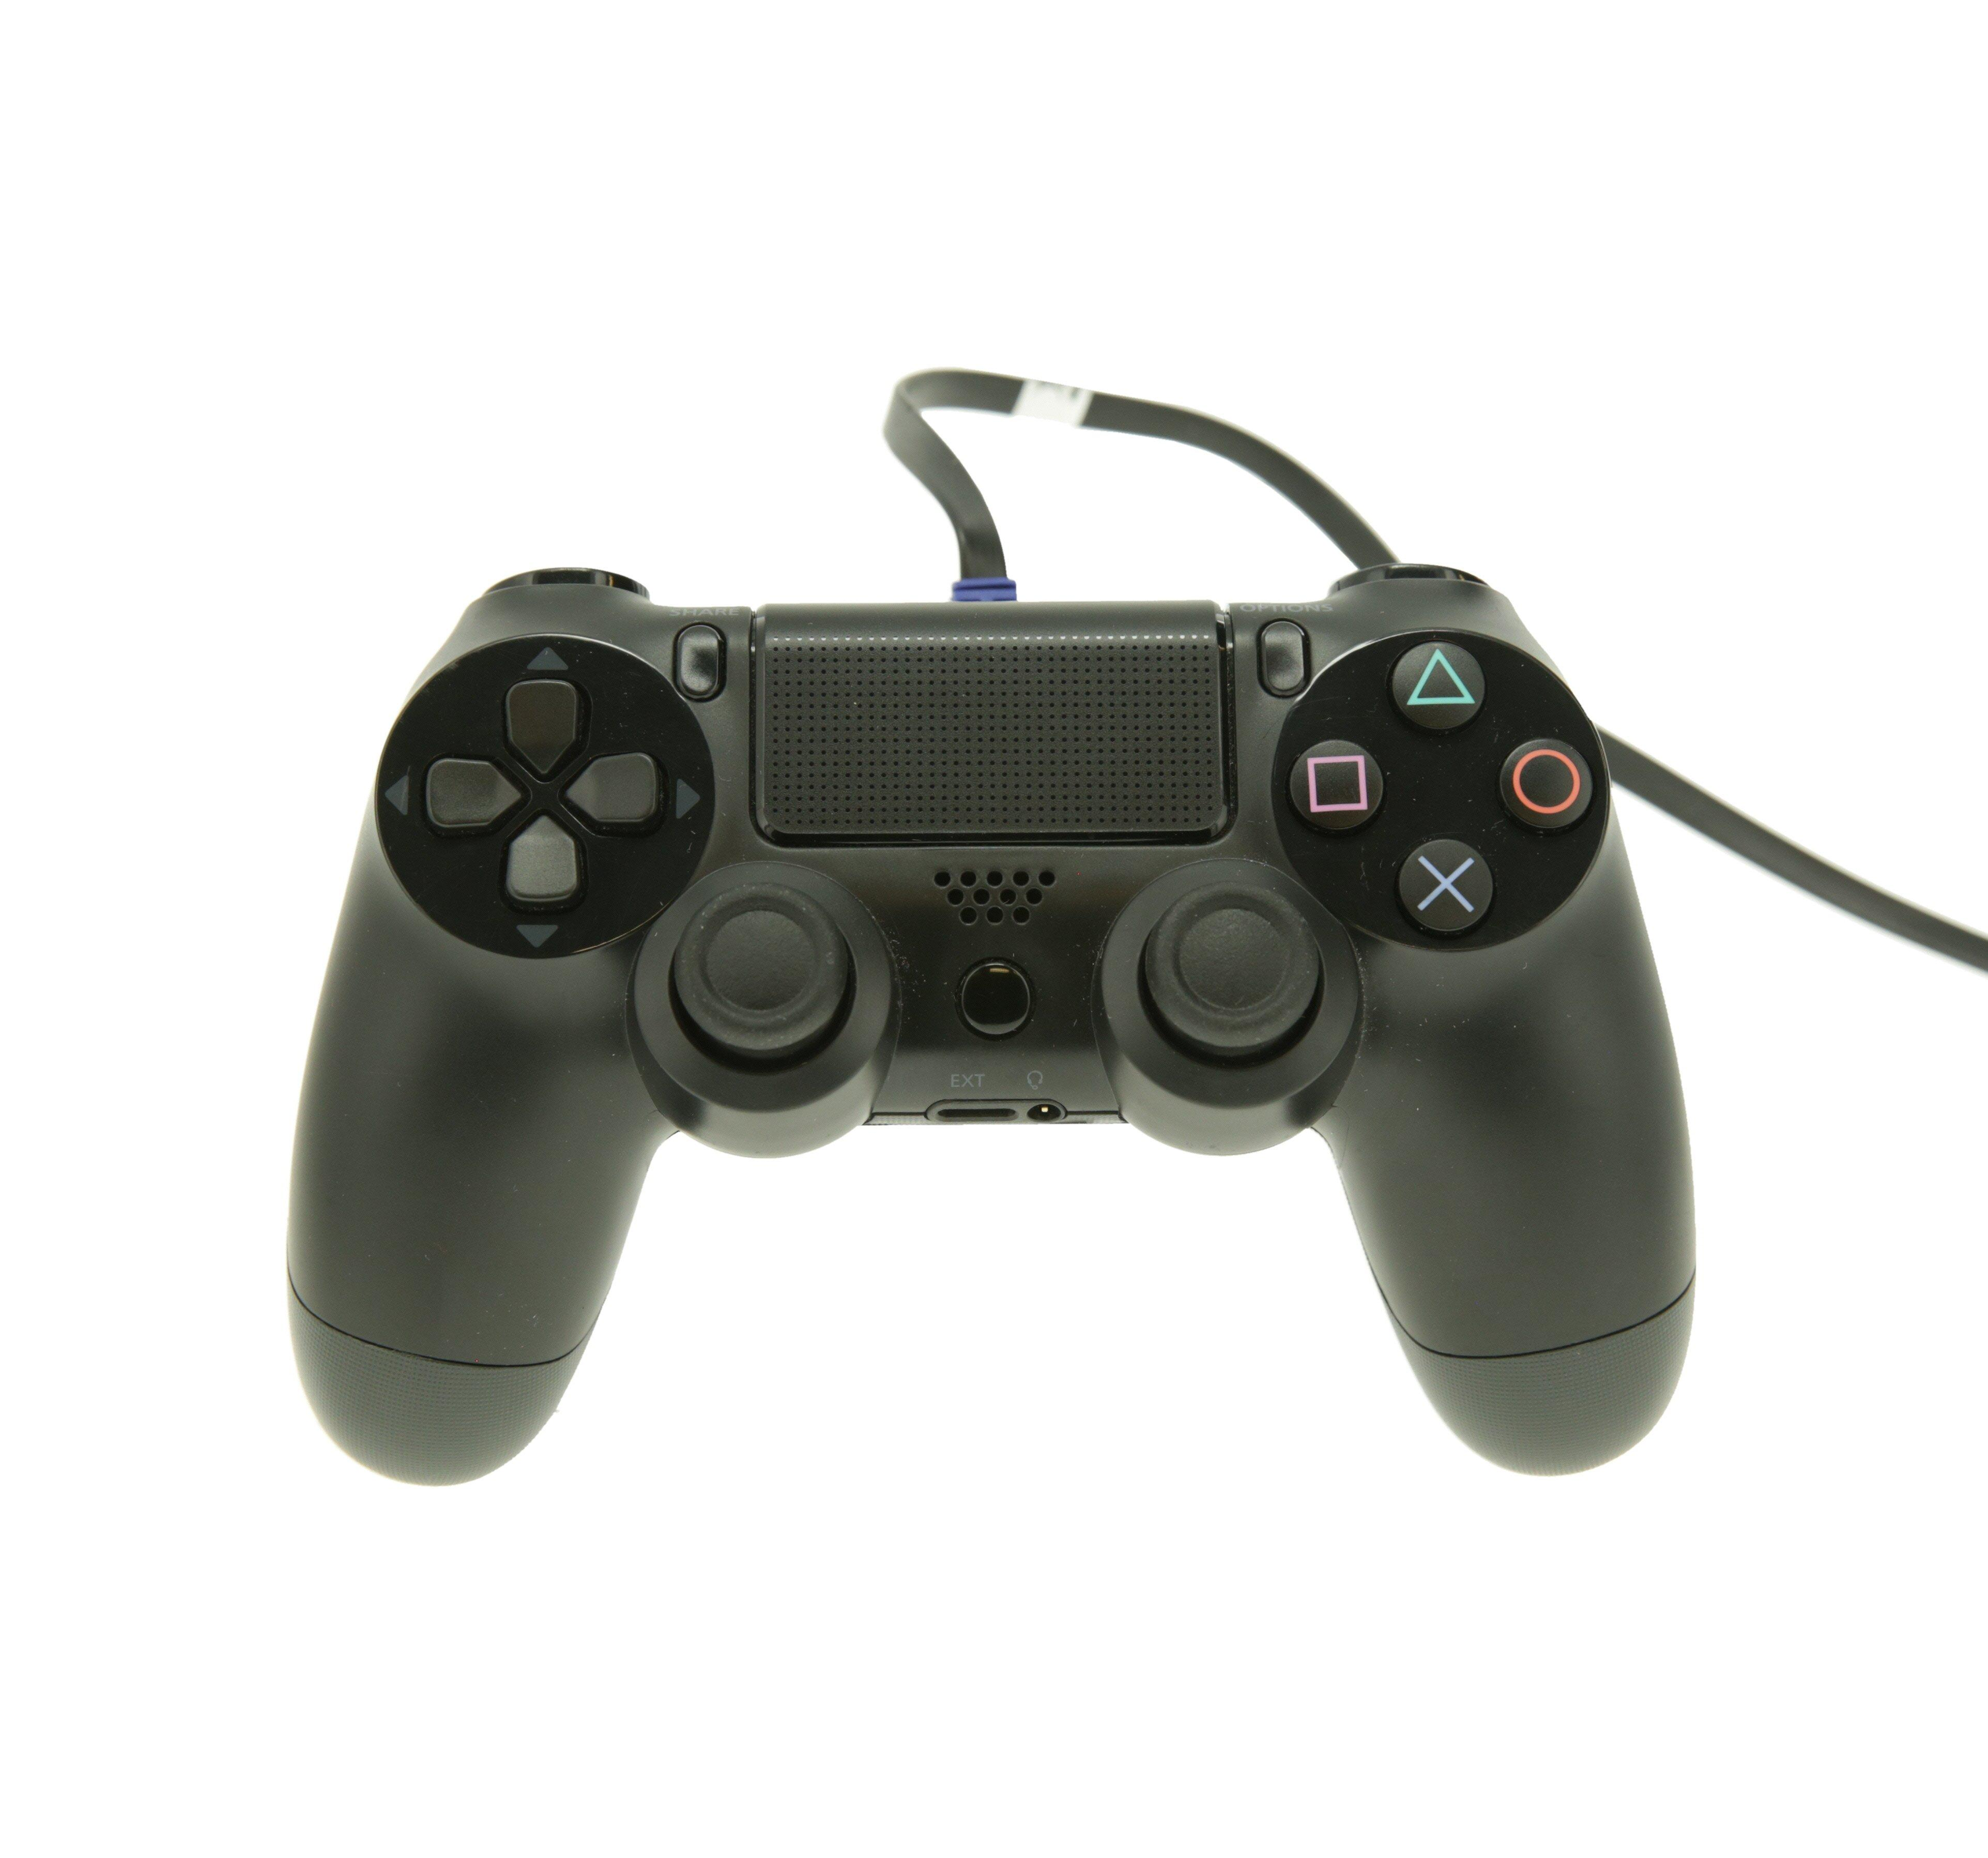 Playstation 4 Wired Controller Any Used Playstation 4